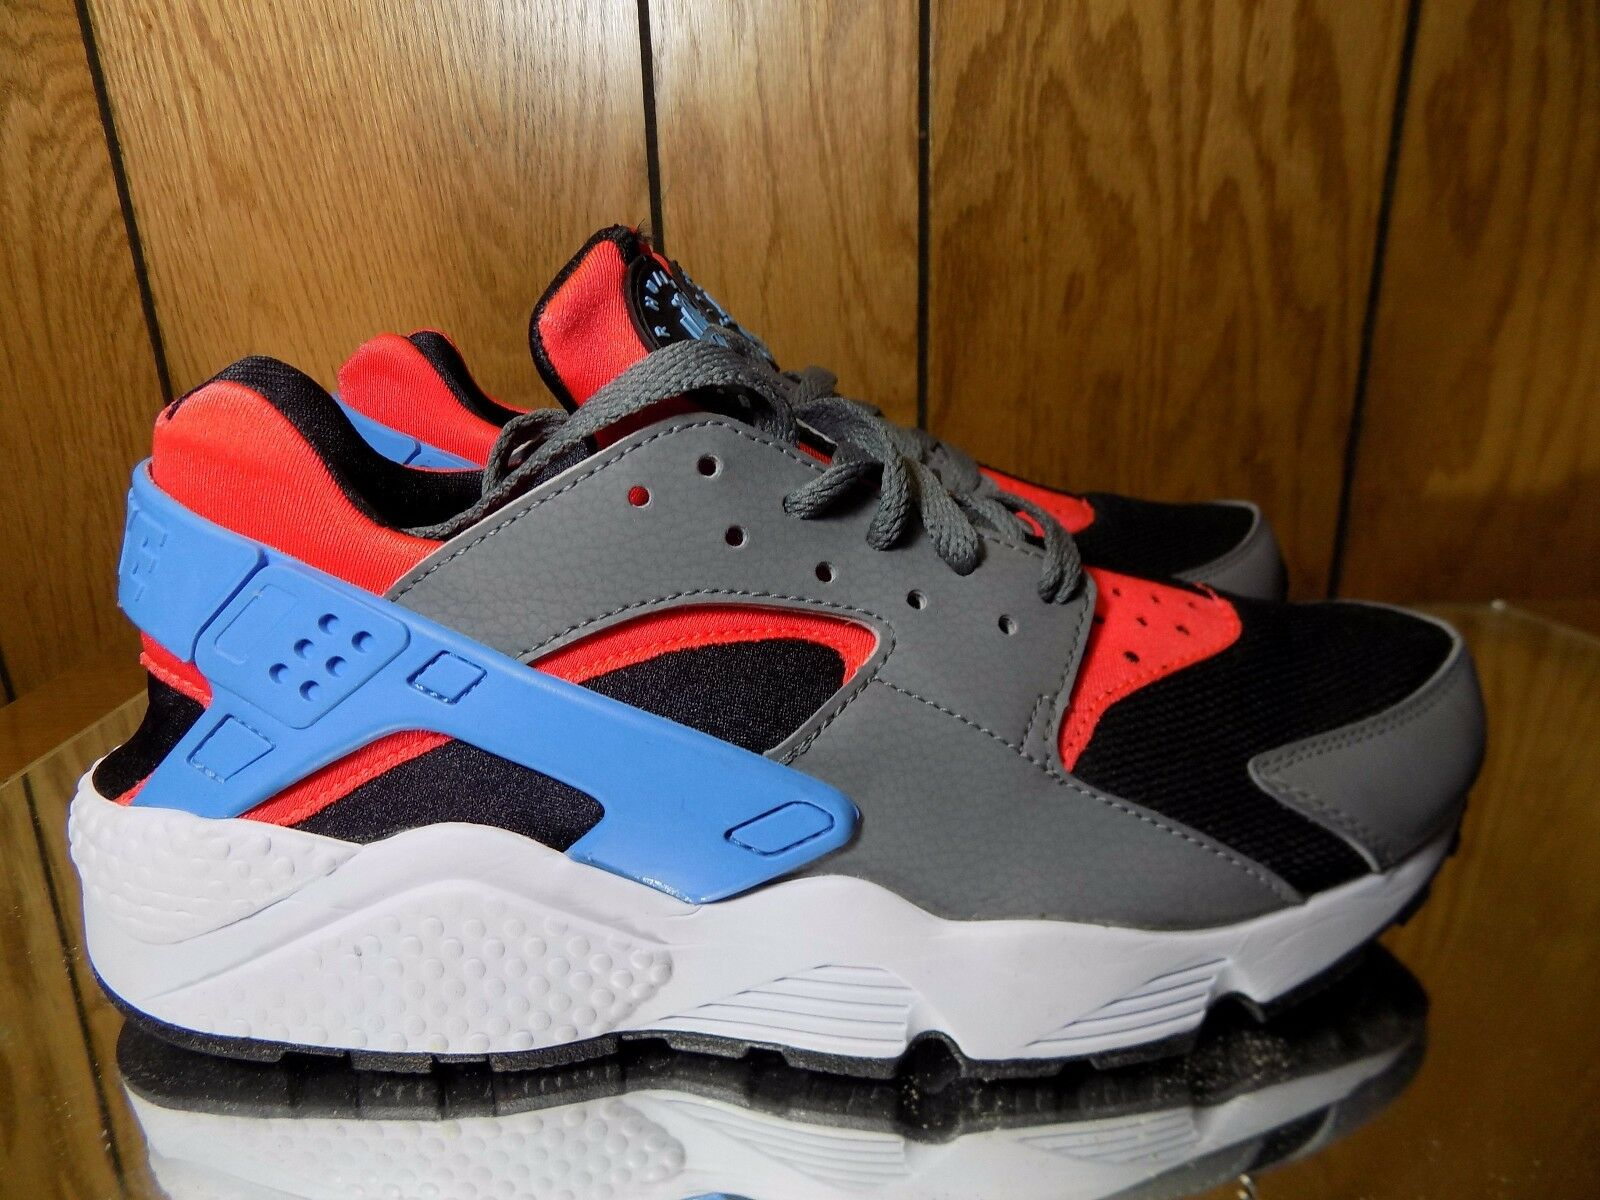 Nike Air Huarache Red blueee Black Grey s. 9